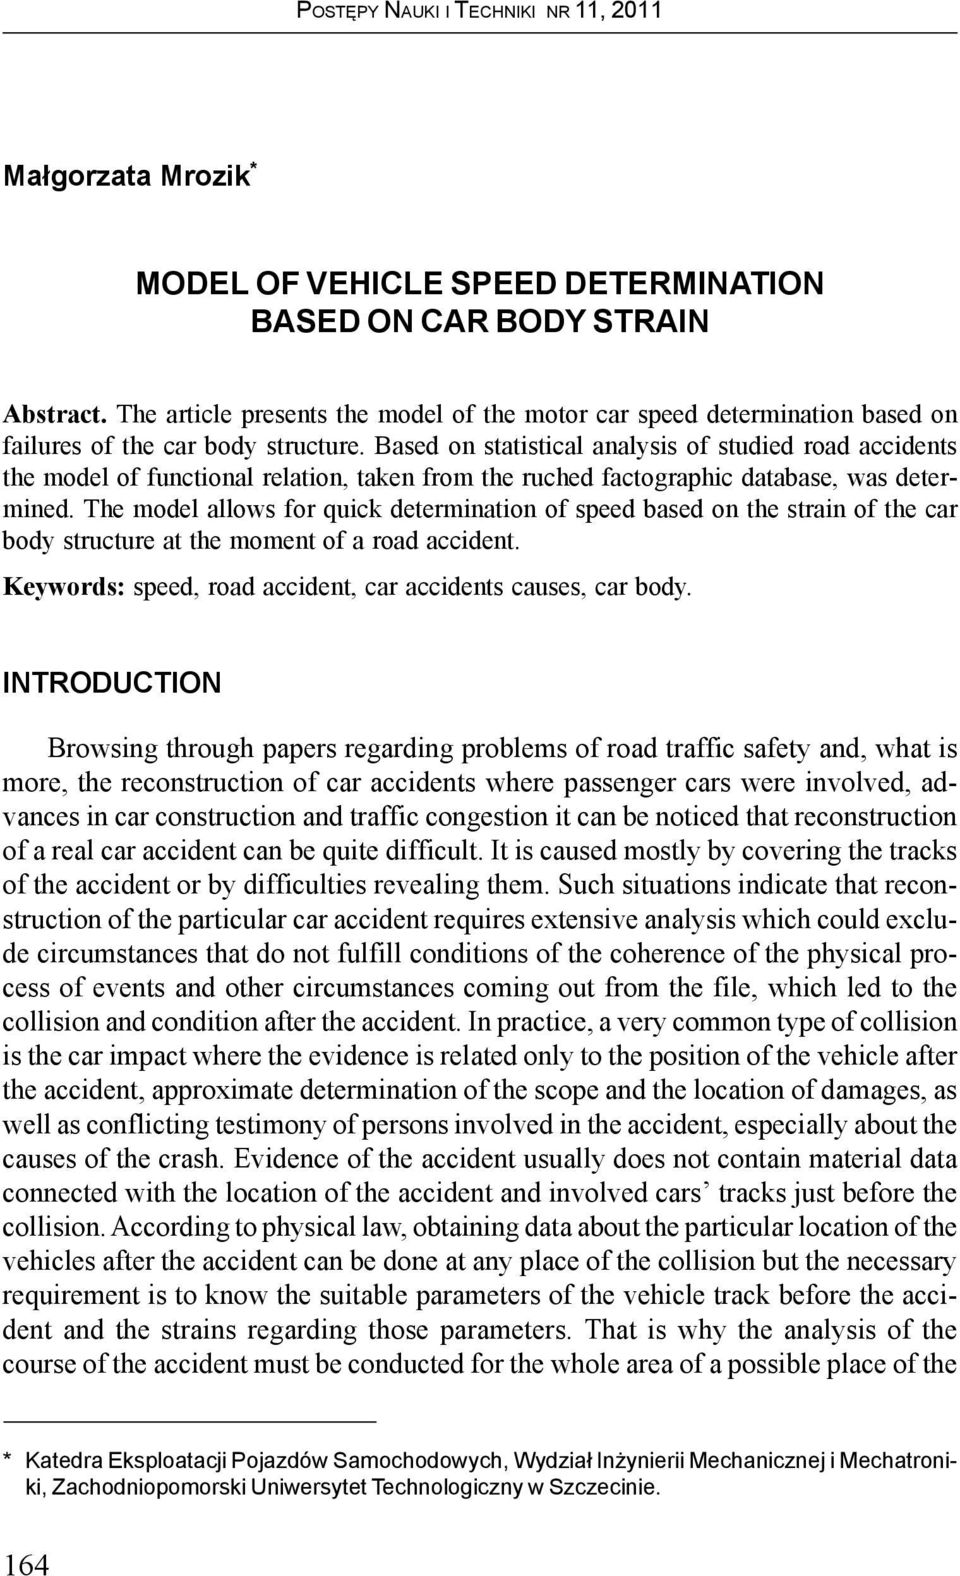 Based on statistical analysis of studied road accidents the model of functional relation, taken from the ruched factographic database, was determined.